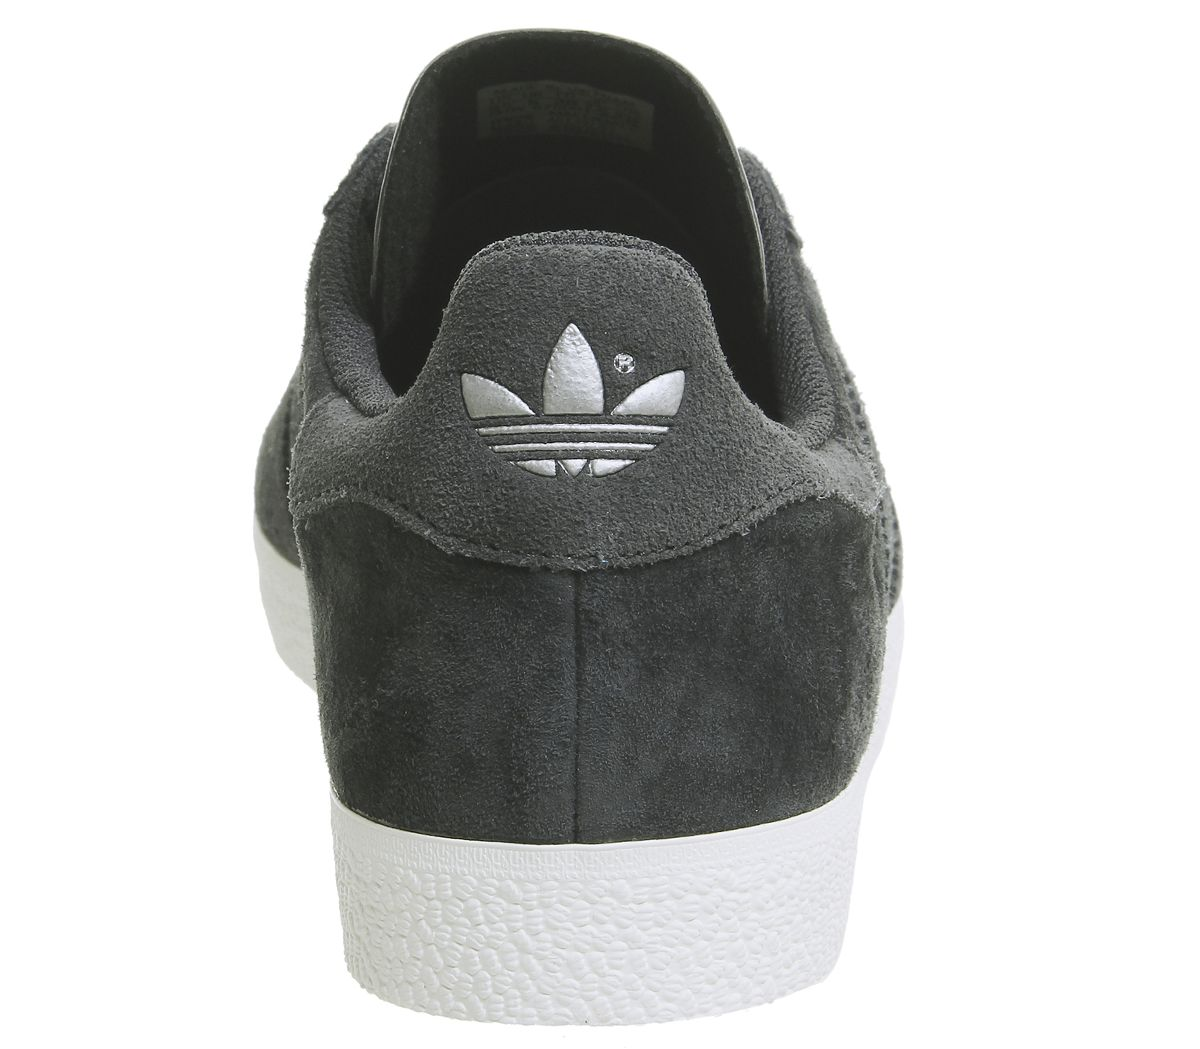 3310e37c Gazelle Trainers. Gazelle Trainers. Gazelle Trainers. Double tap to zoom  into the image. adidas, Gazelle Trainers, Night Grey Carbon Silver Exclusive  ...